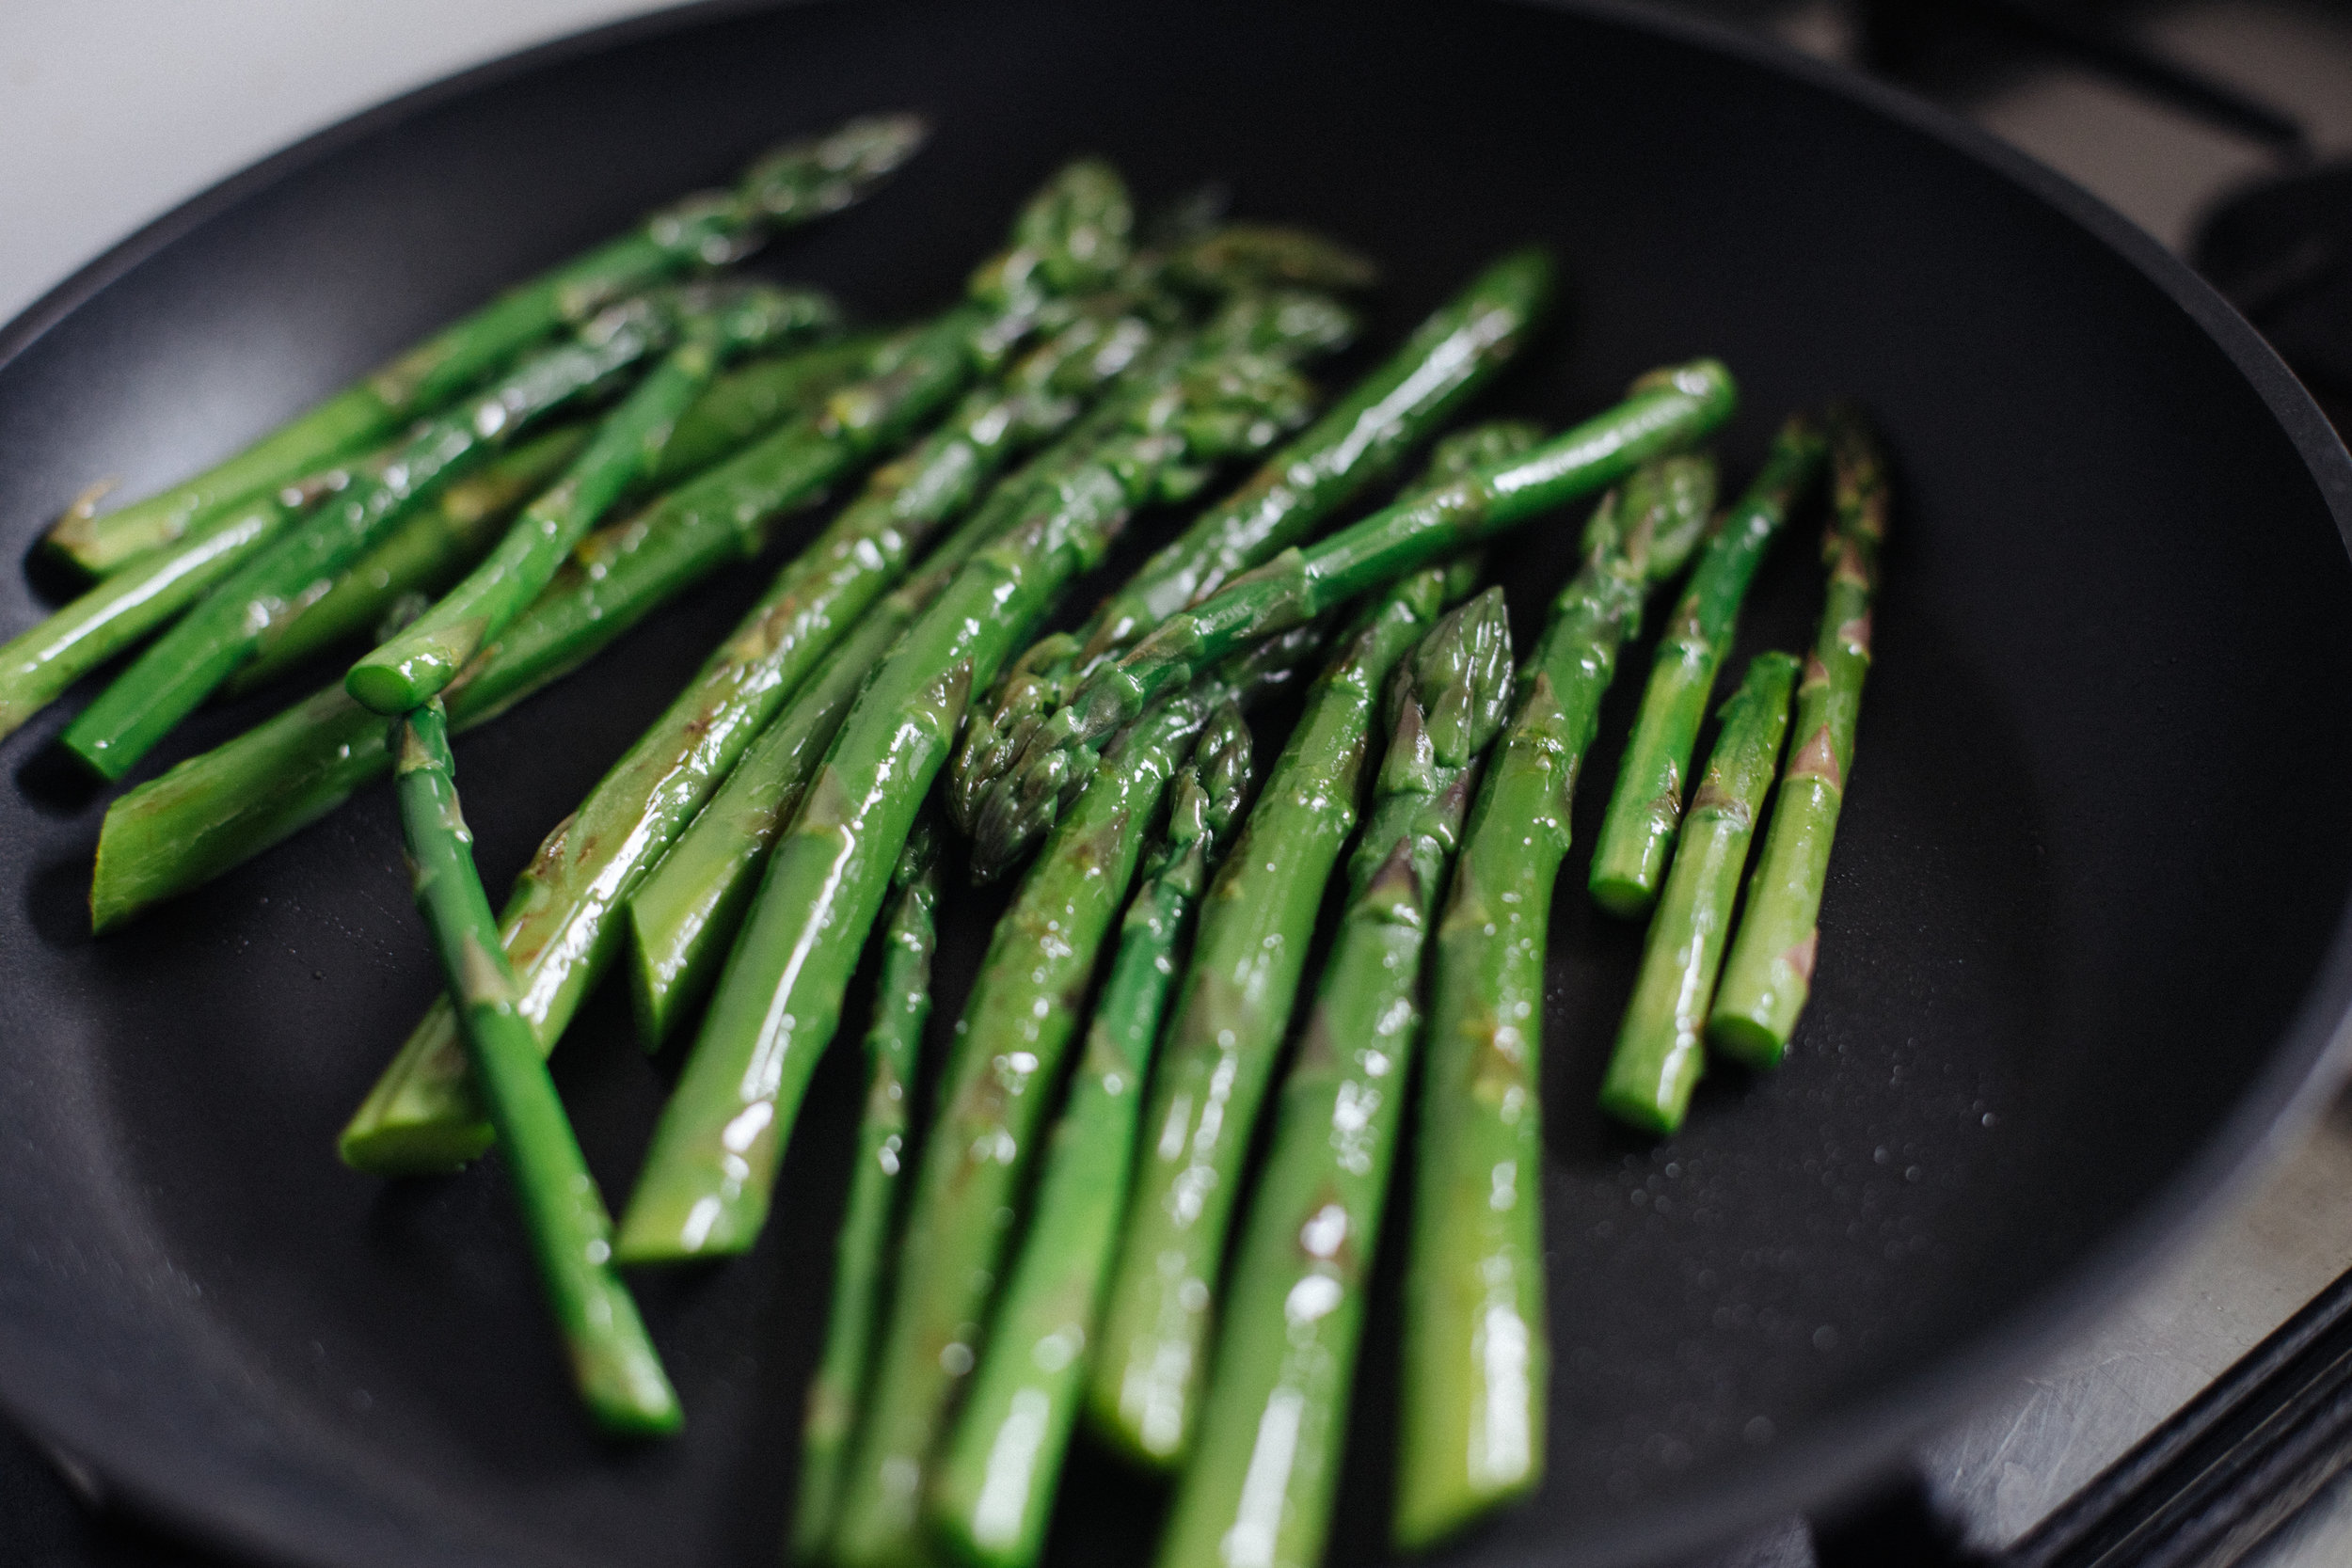 Then pan fry with a drizzle of olive oil to brown.